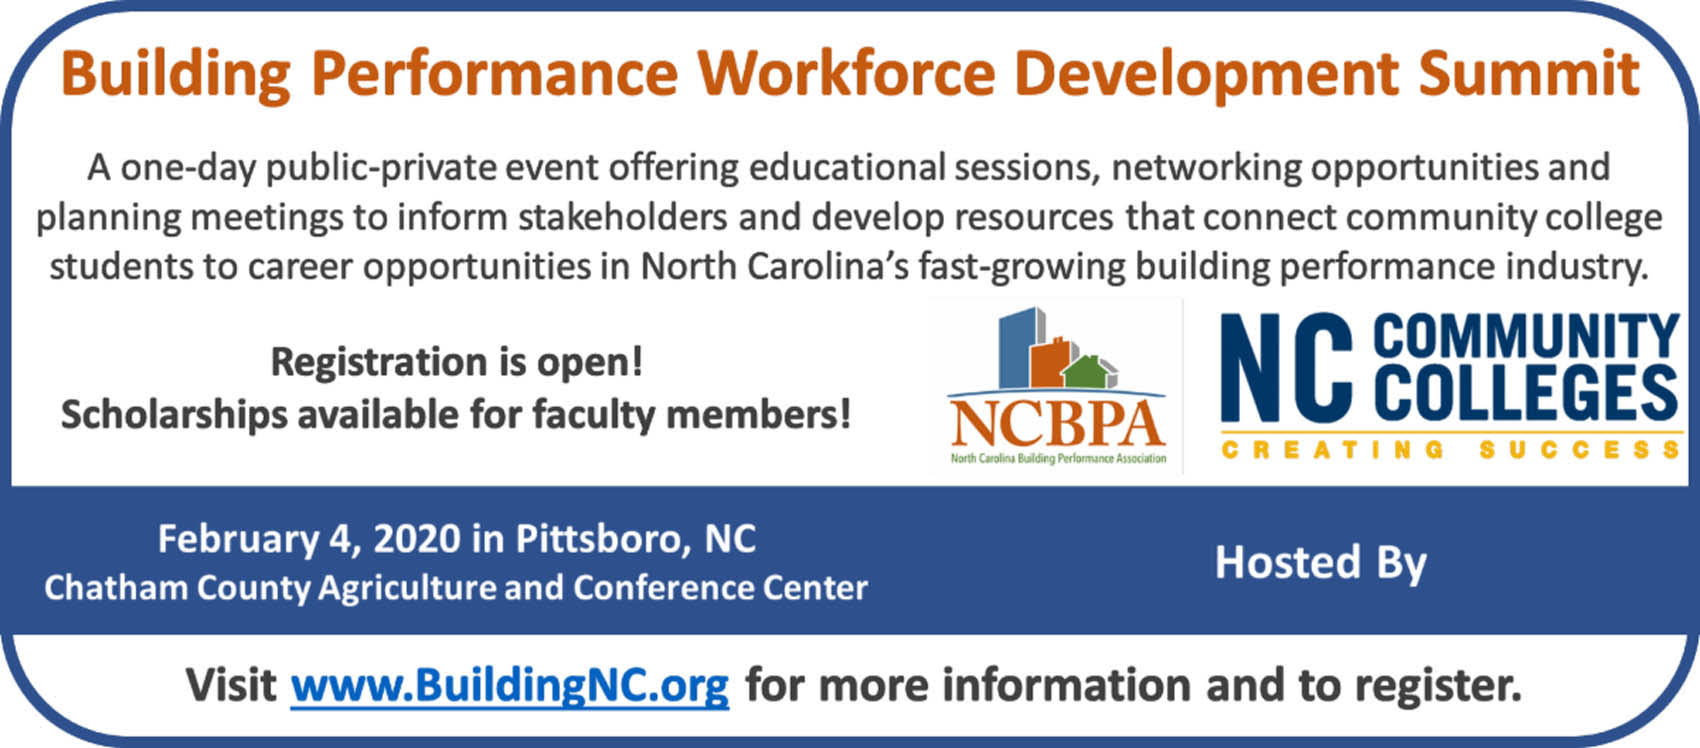 Read the full story, CCCC will host Building Performance Workforce Development Summit